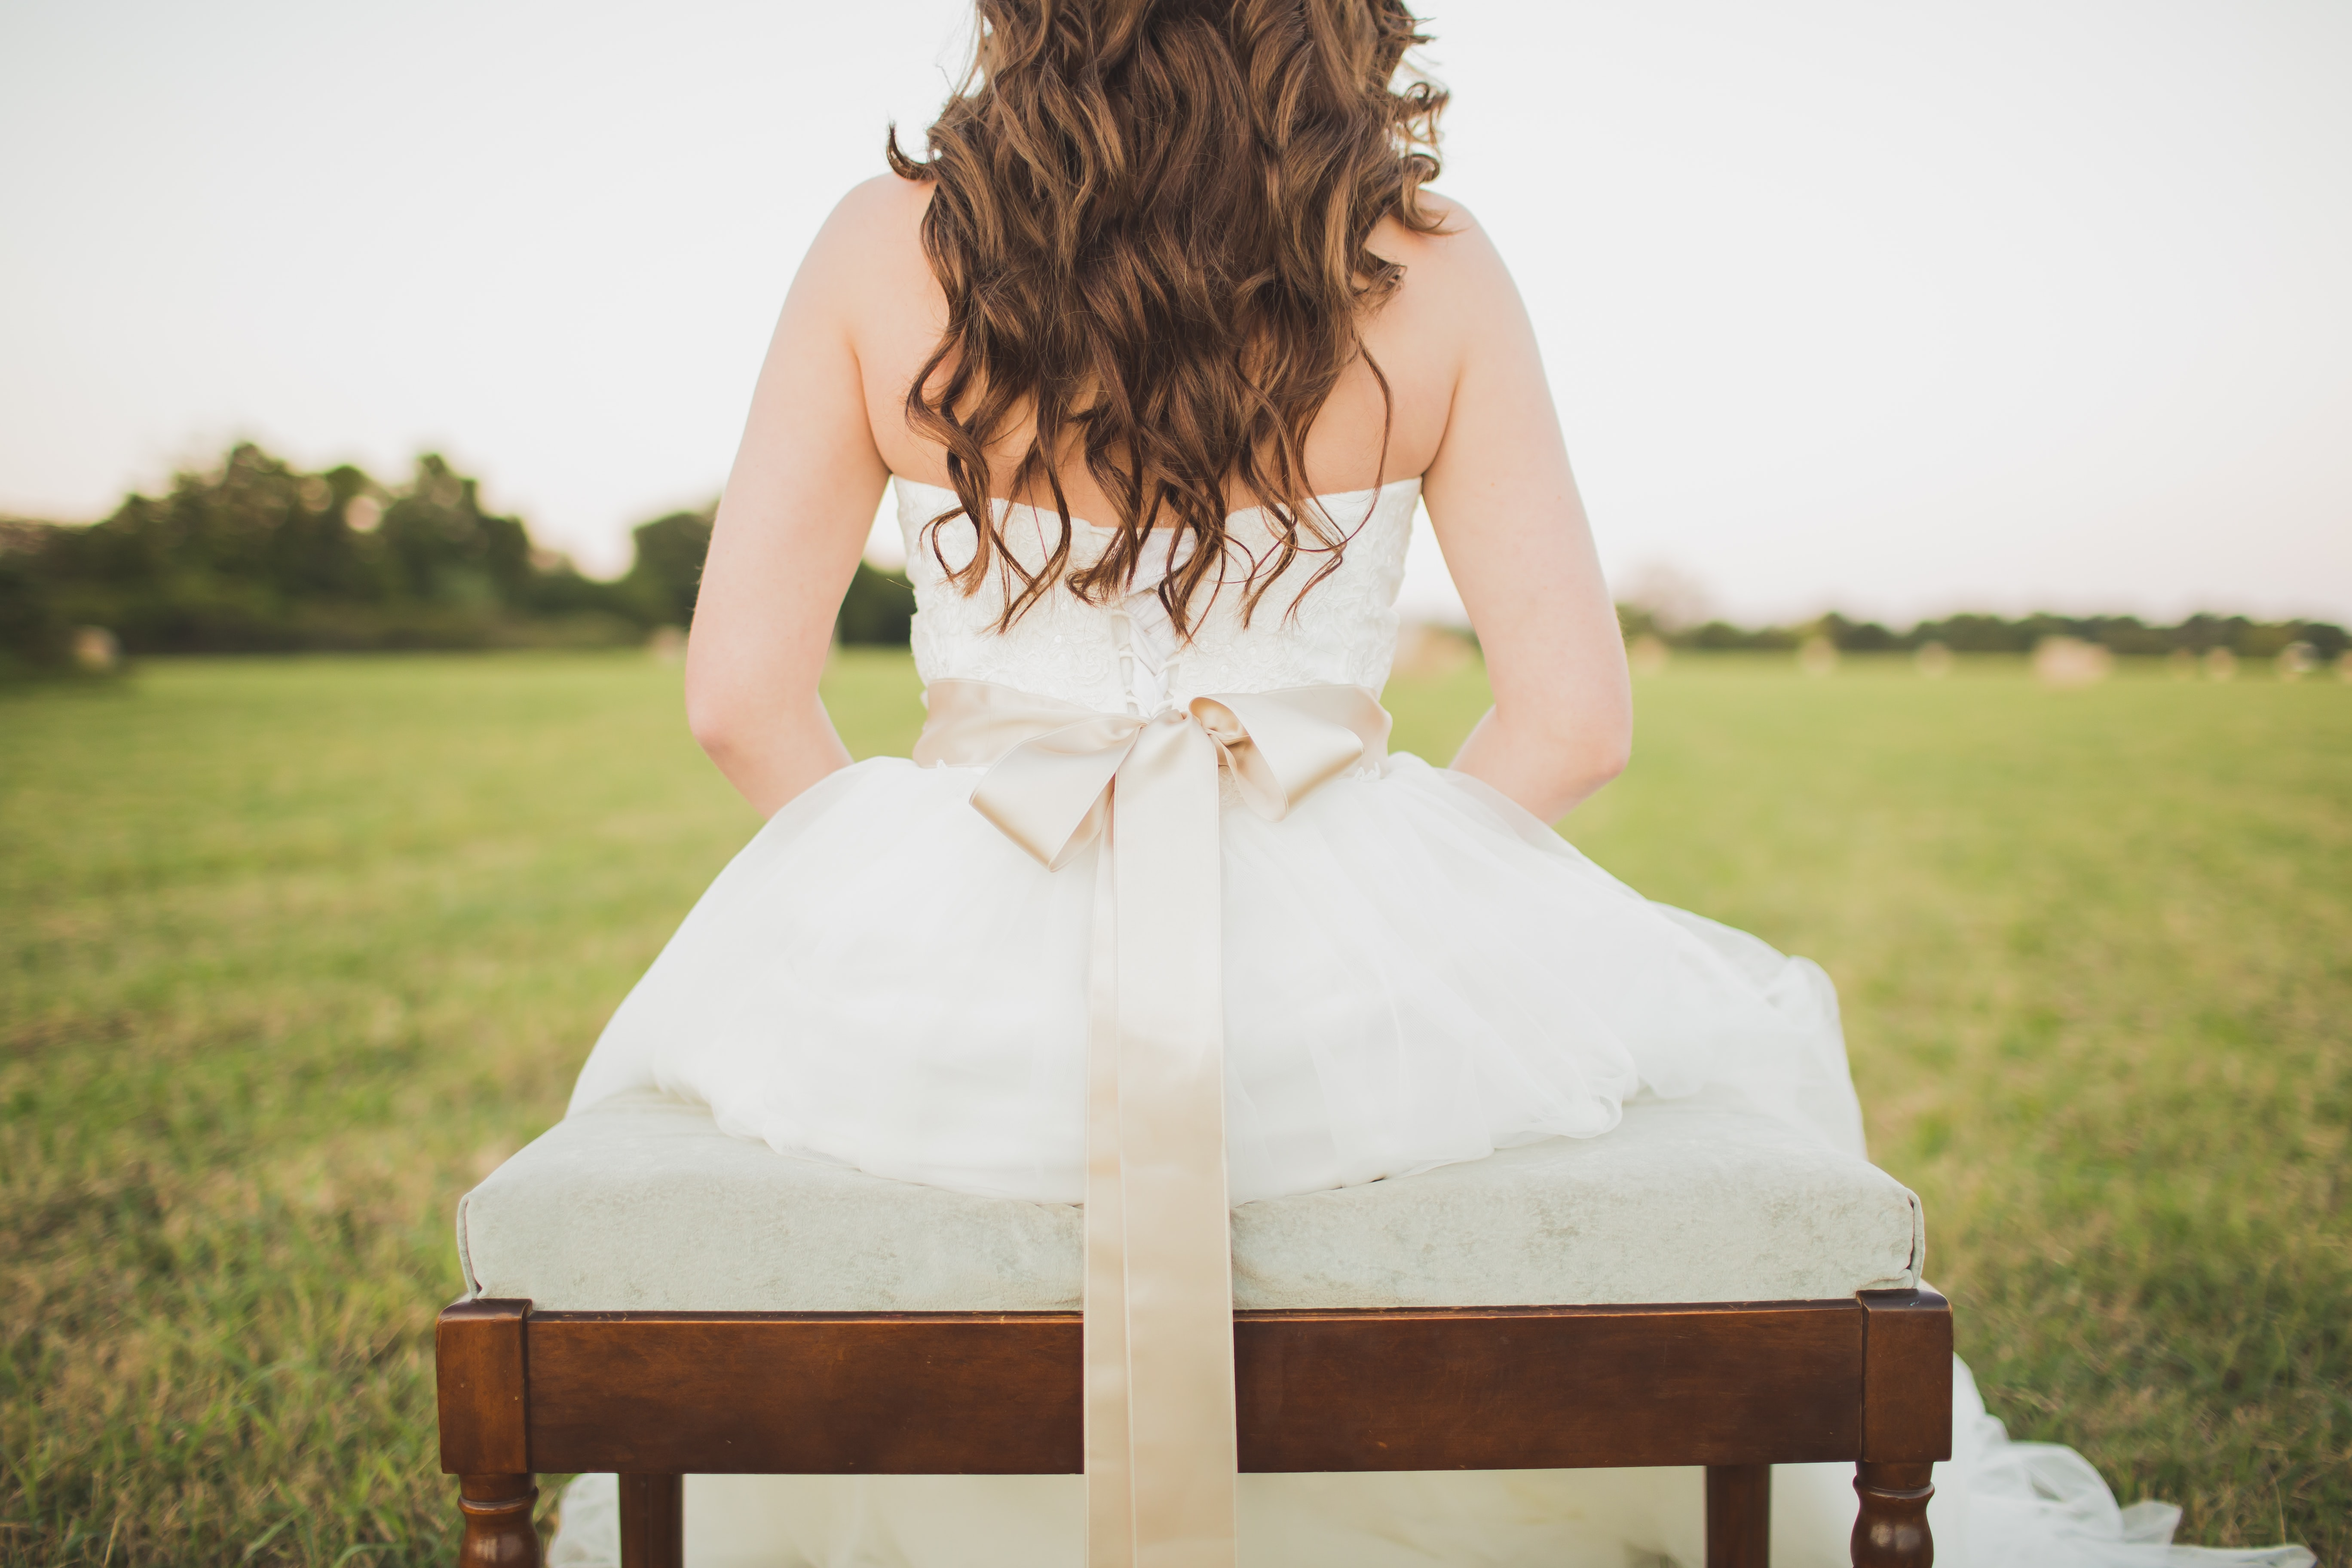 bride sitting with her back to camera on a bench